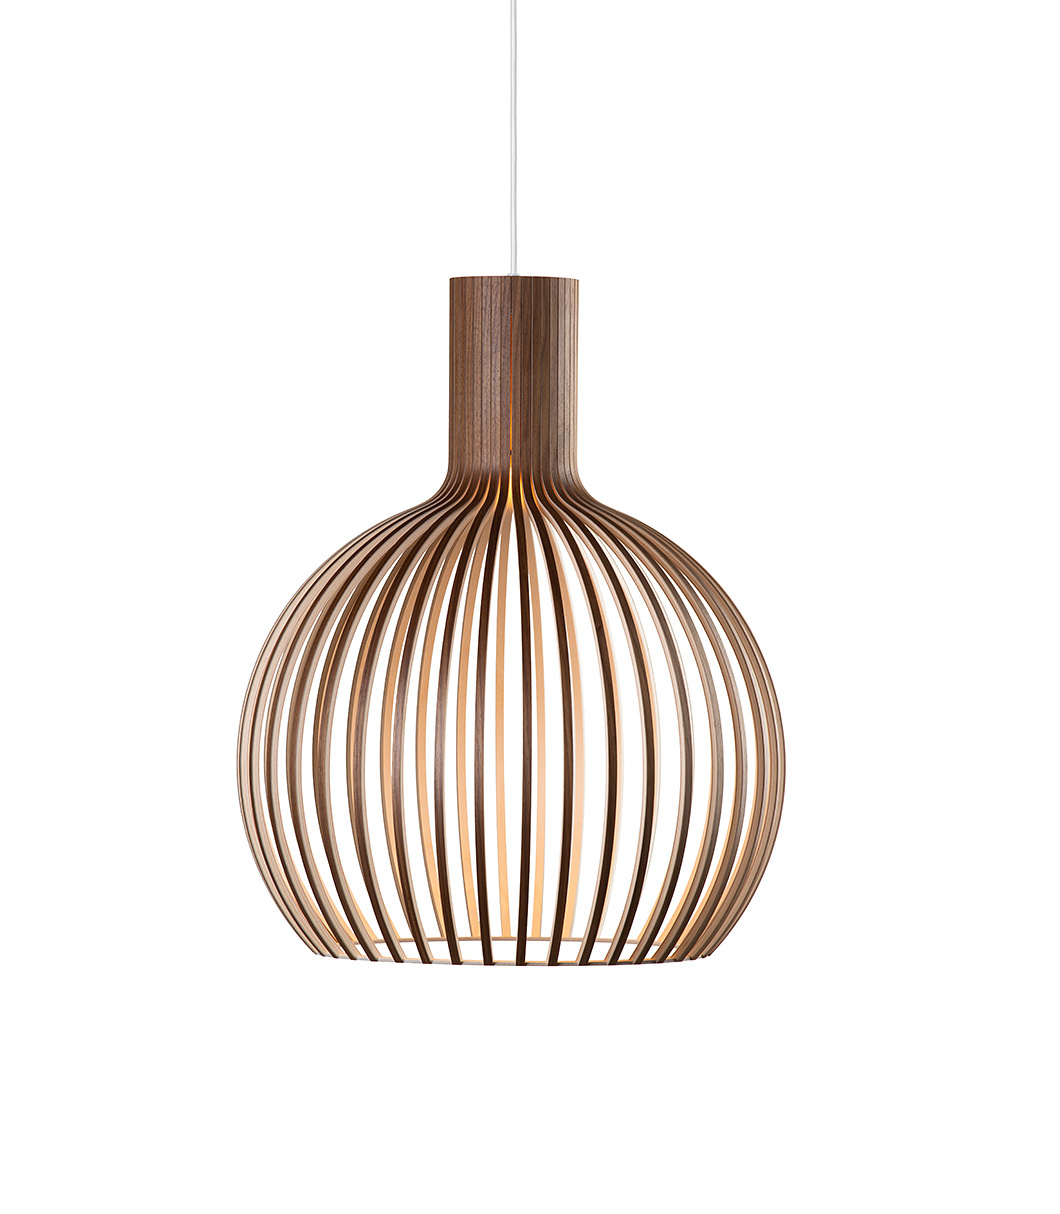 Octo Small 4241 pendant lamp color walnut